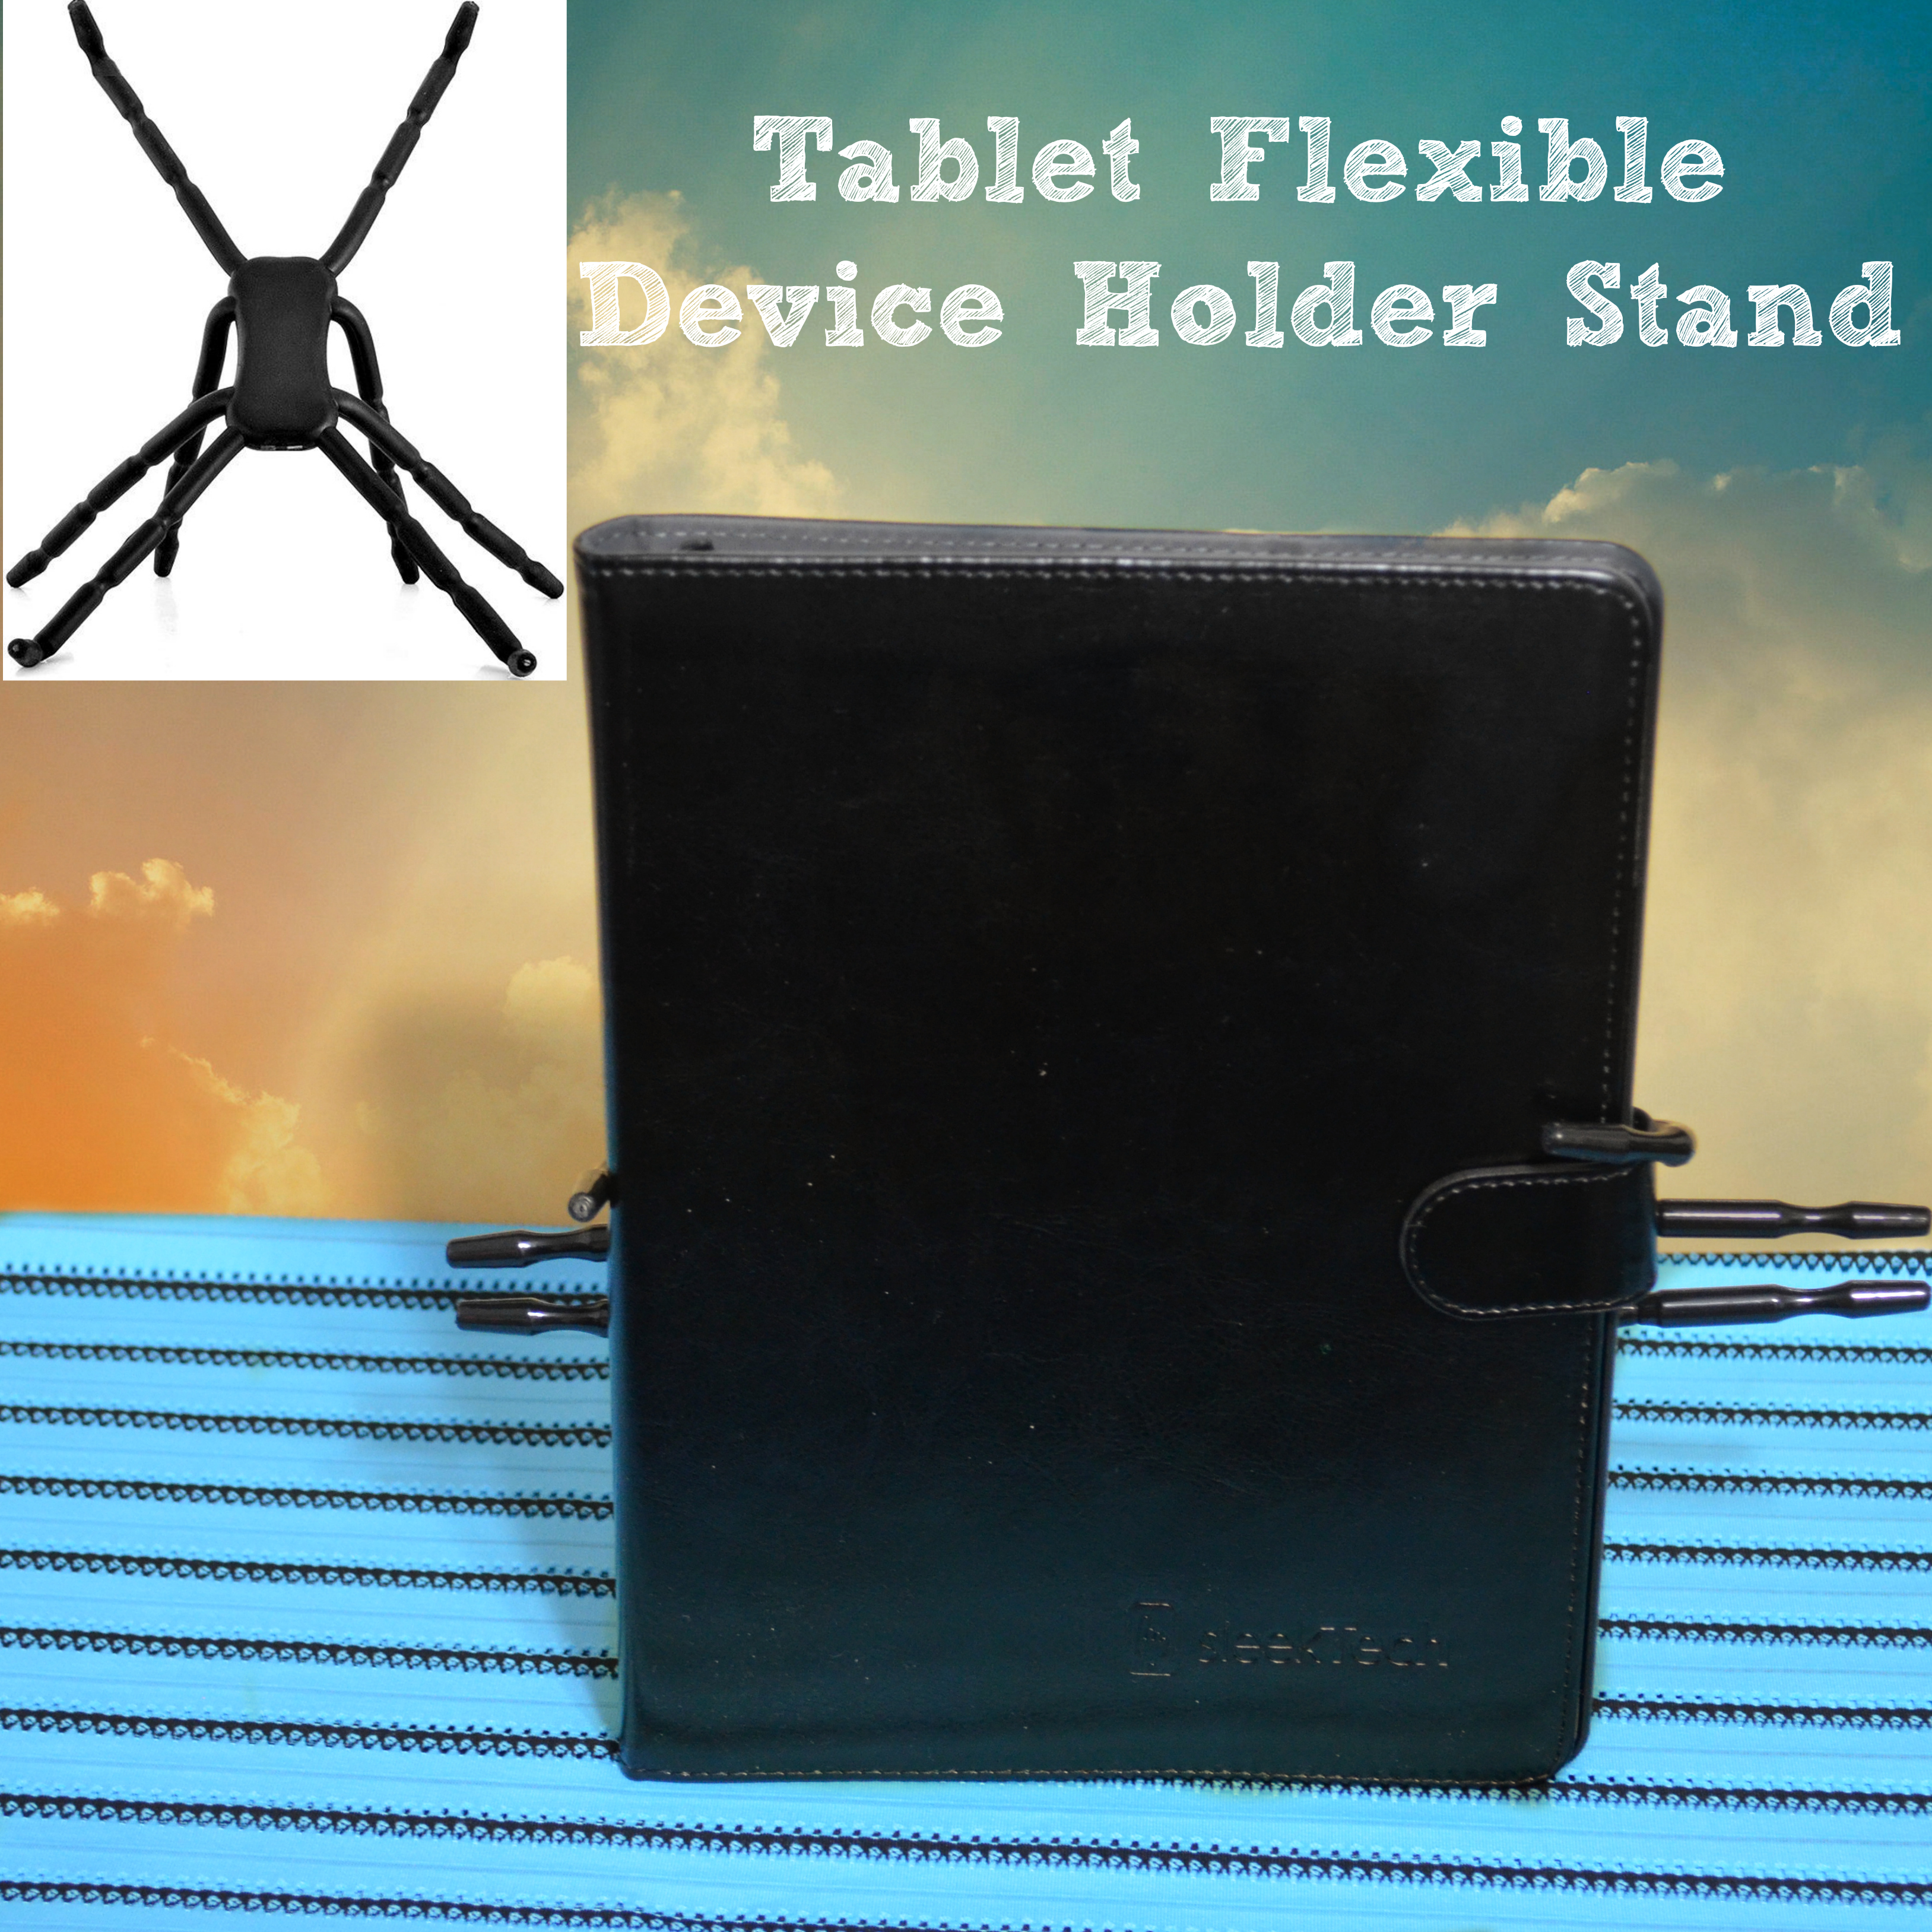 Tablet Flexible Device Holder Spider Stand